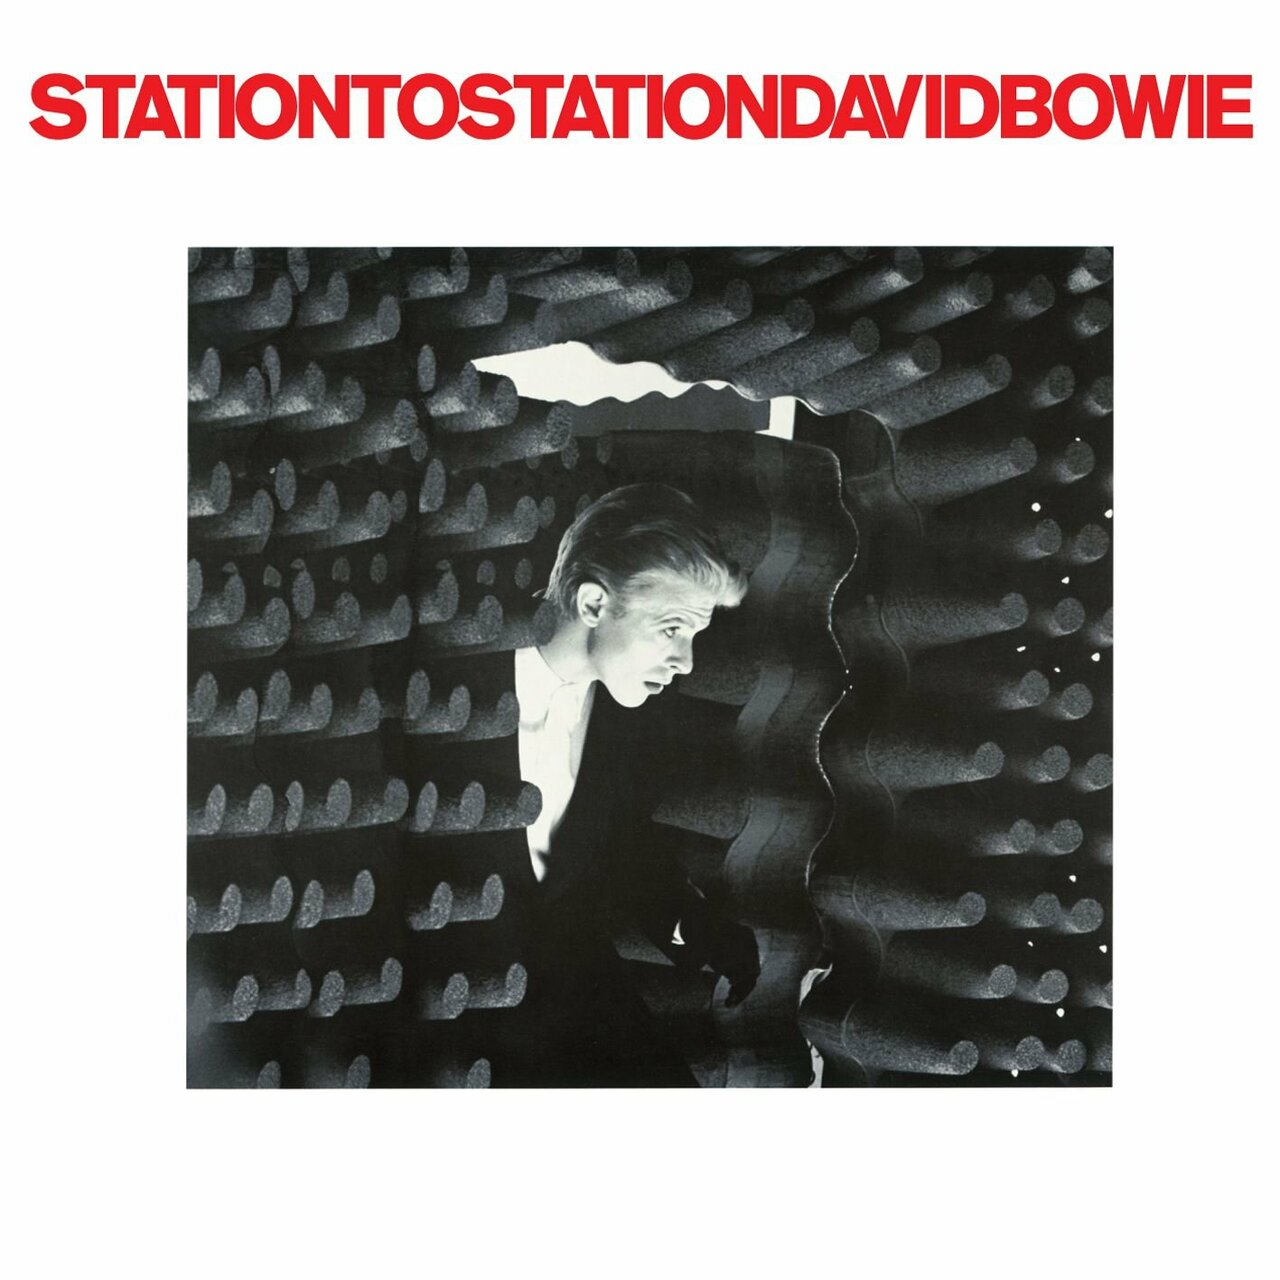 David Bowie - Station to Station Limited Edition 45th Anniversary Random Red and White Vinyl